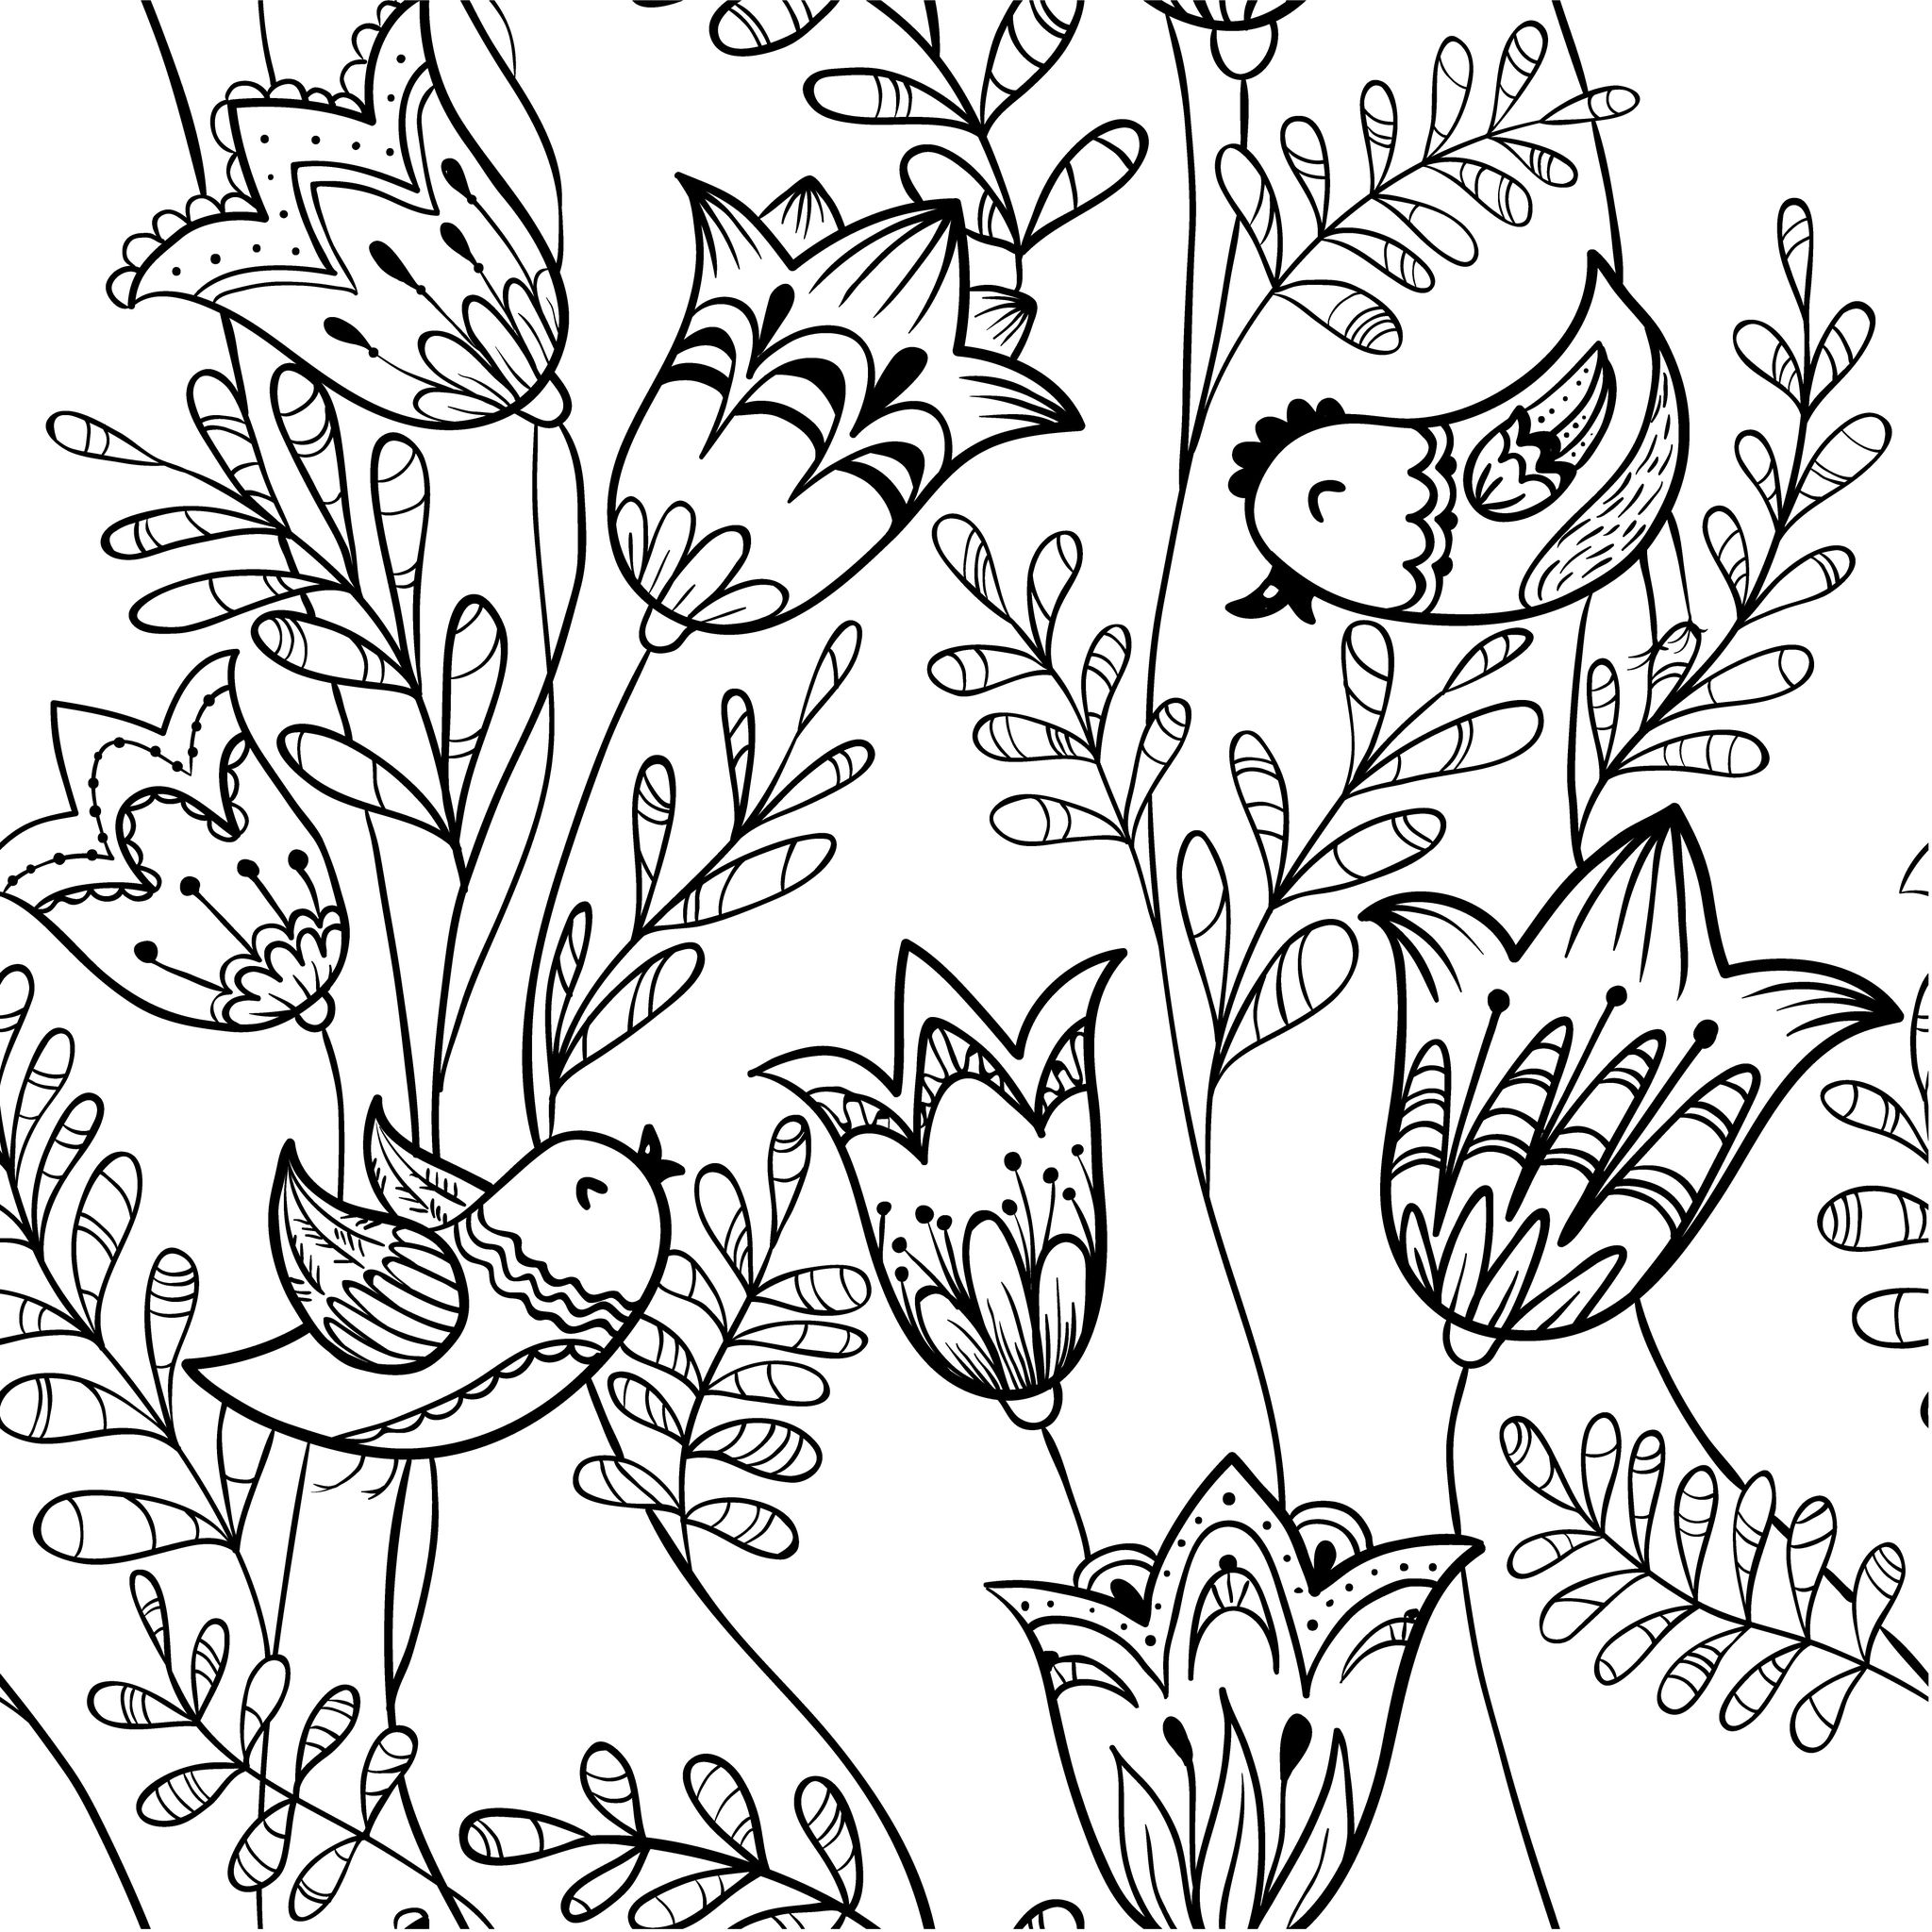 Coloriage Printemps Pluie.Coloriage Adulte Printemps